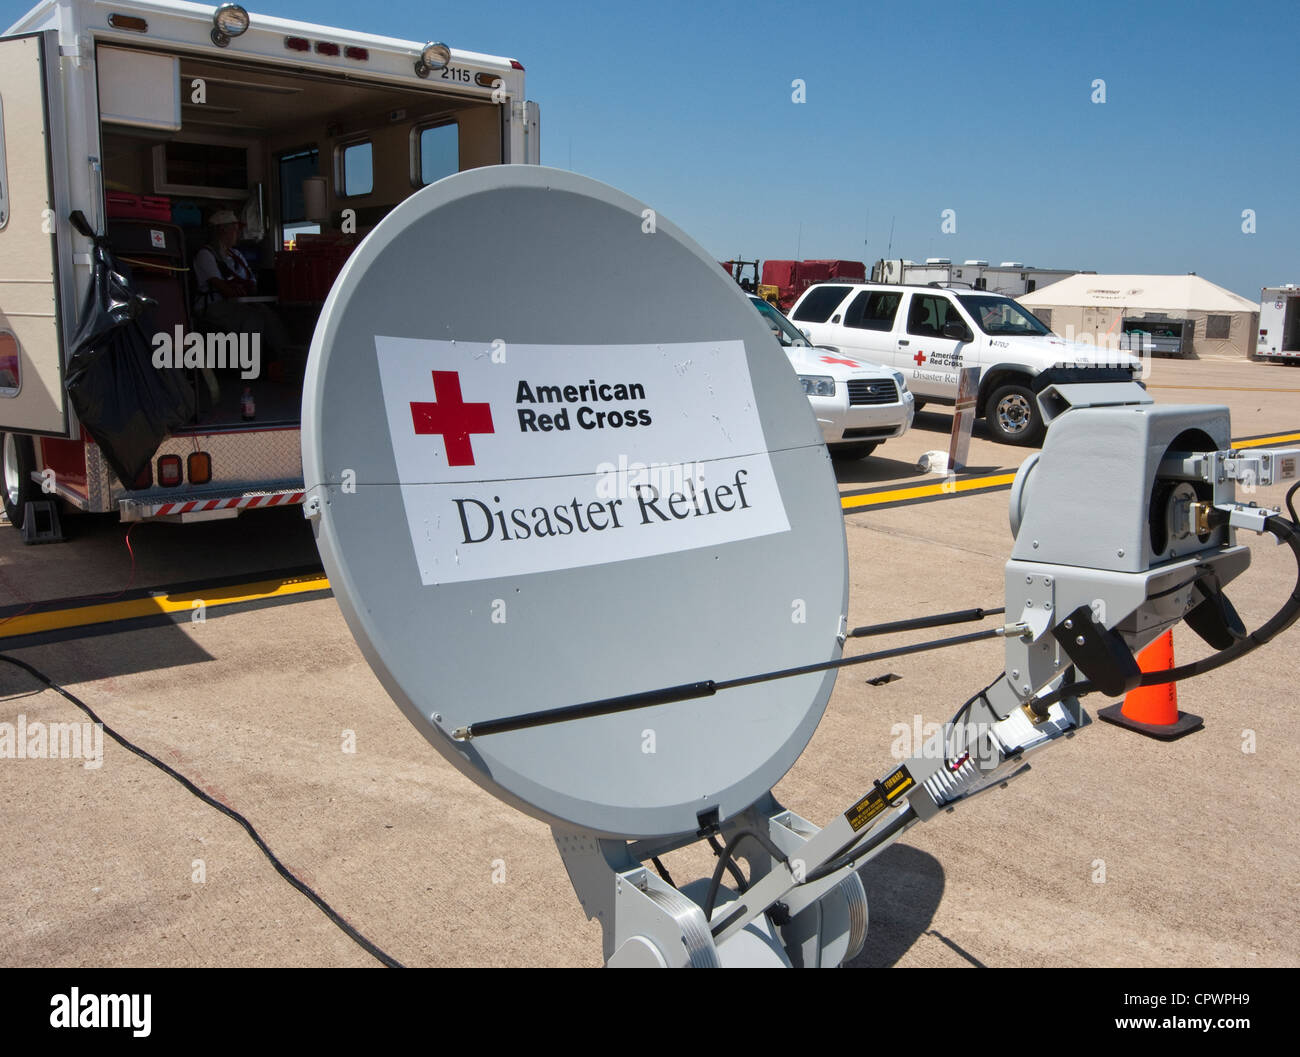 American Red Cross disaster relief satellite set-up during a hurricane preparedness training exercise in Austin, - Stock Image